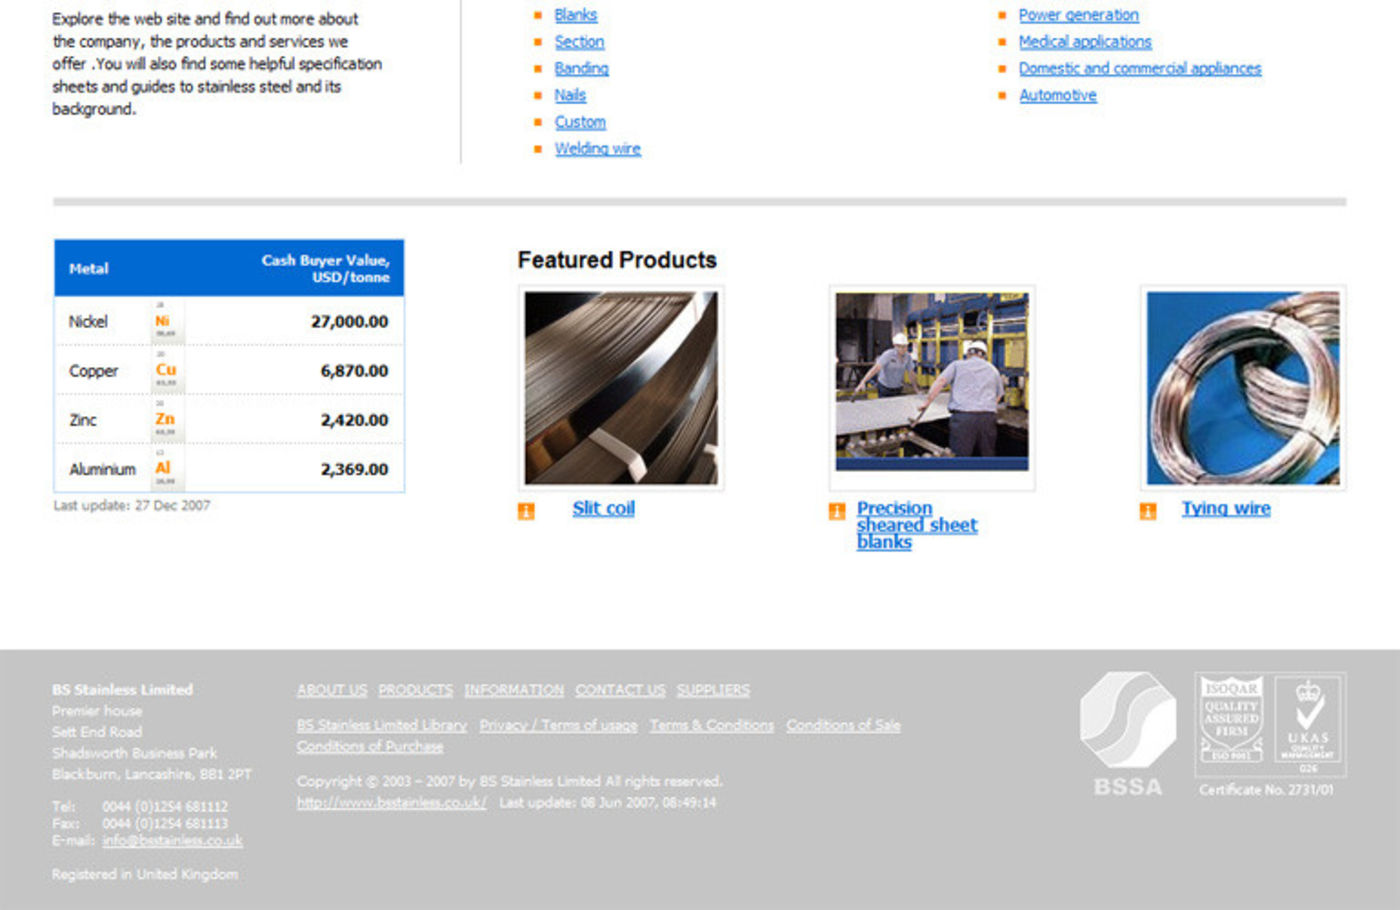 BS Stainless 2004 Homepage footer